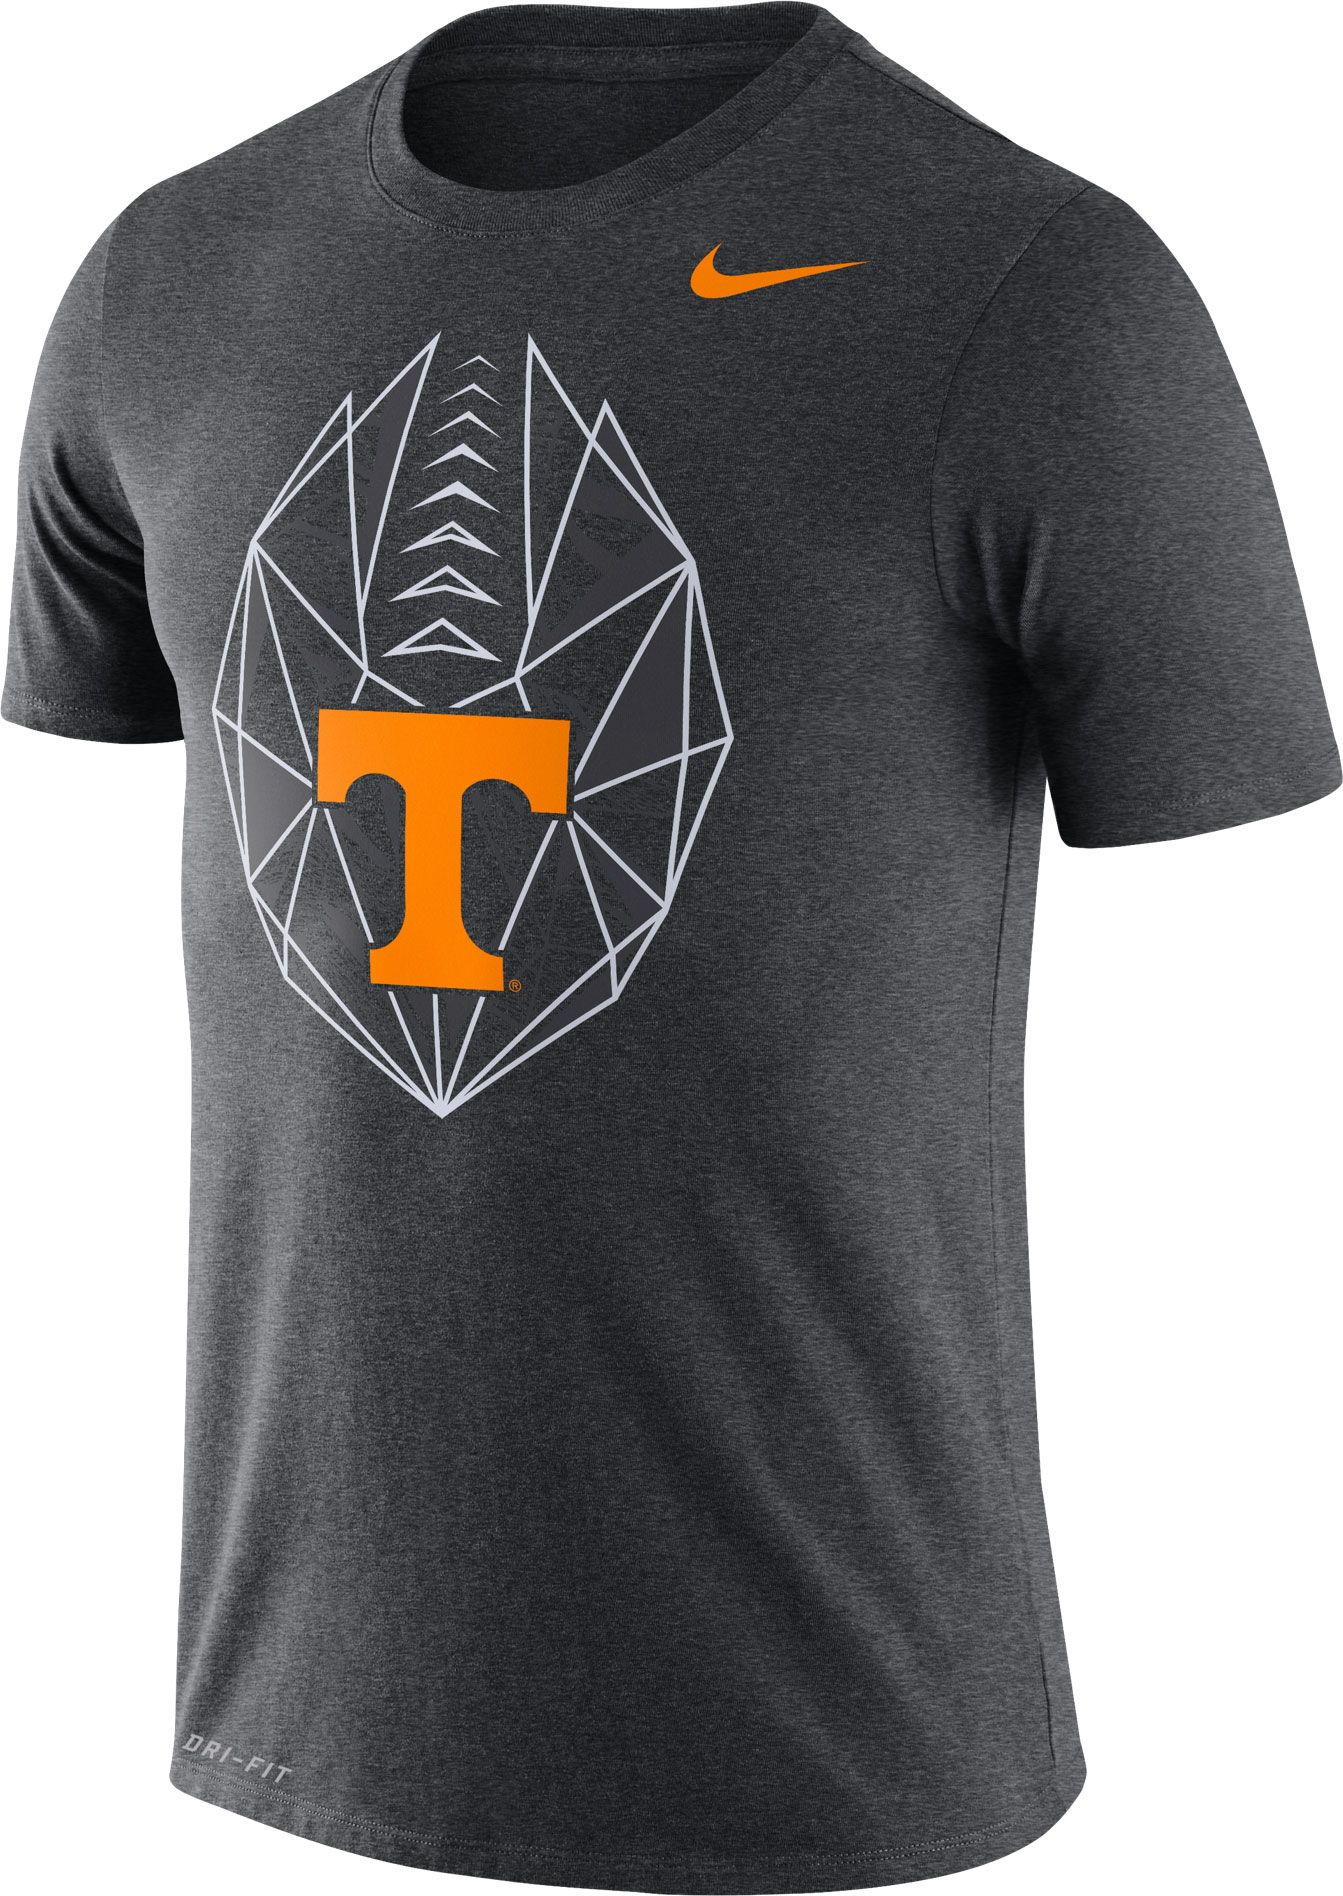 48c2ba2bb Nike Men's Tennessee Volunteers Grey Dri-FIT Football Icon T-Shirt, Team